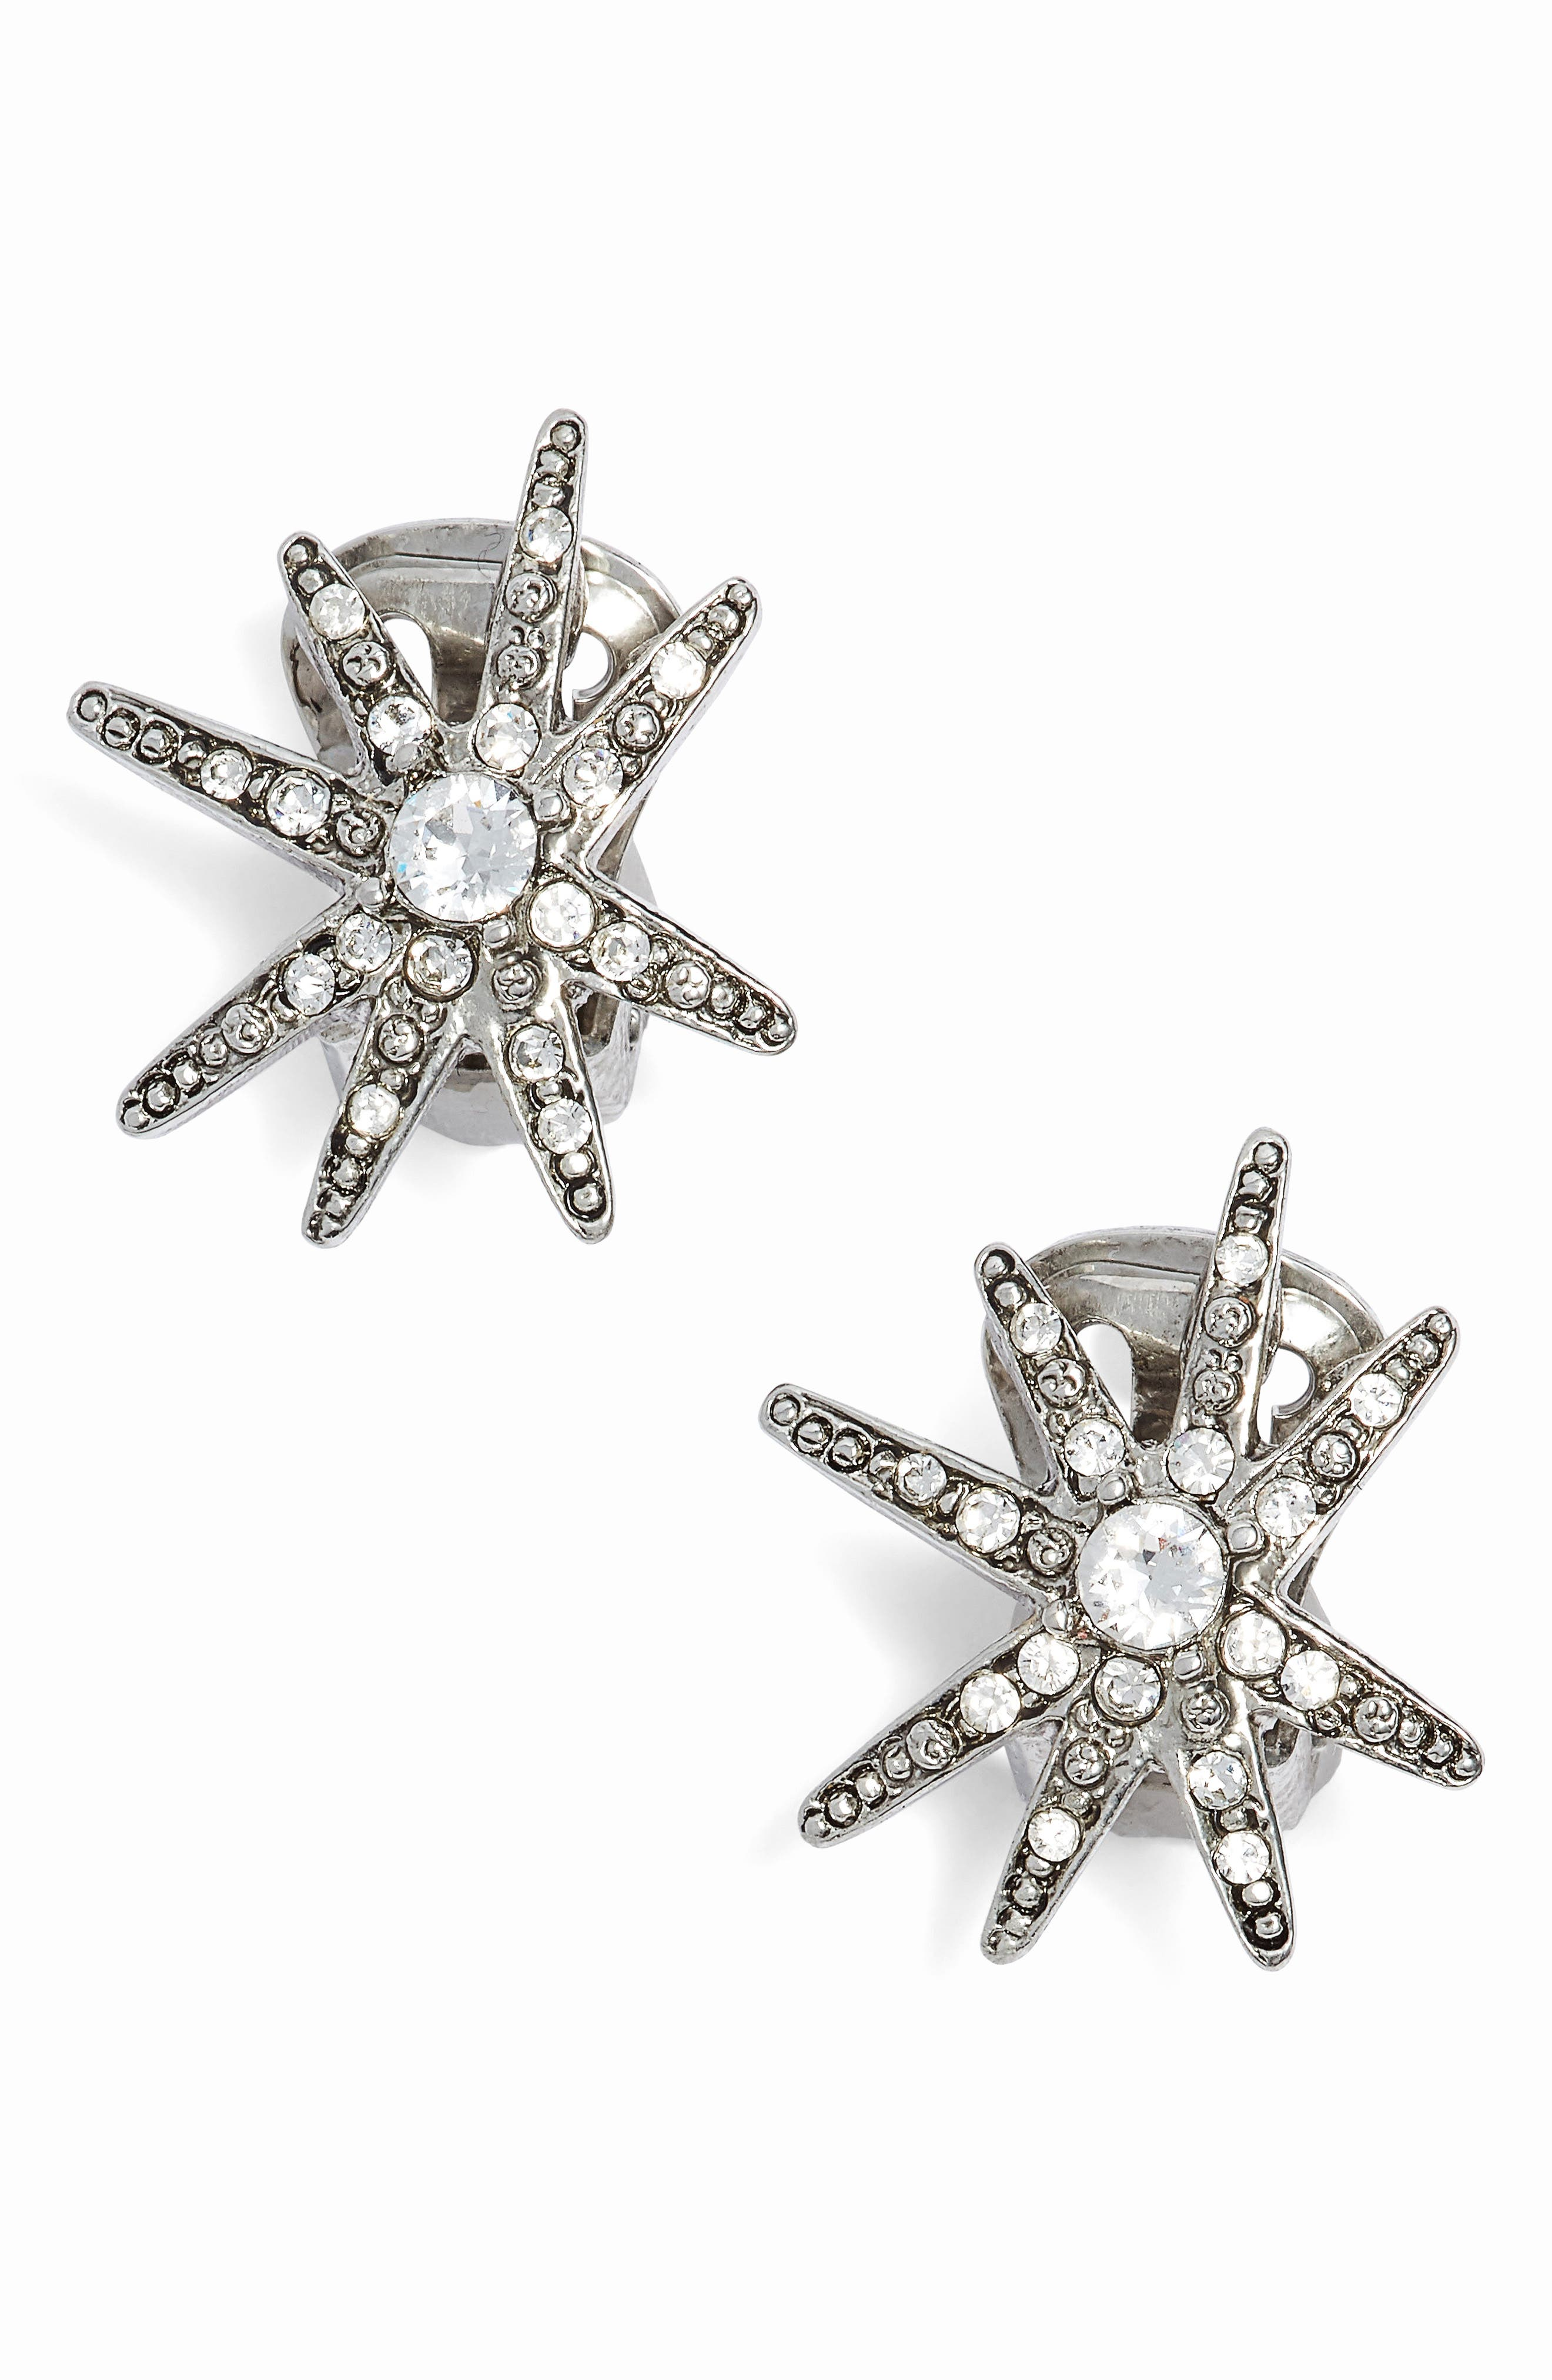 Crystal Fireworks Stud Earrings,                         Main,                         color, Crystal Shade / Silver